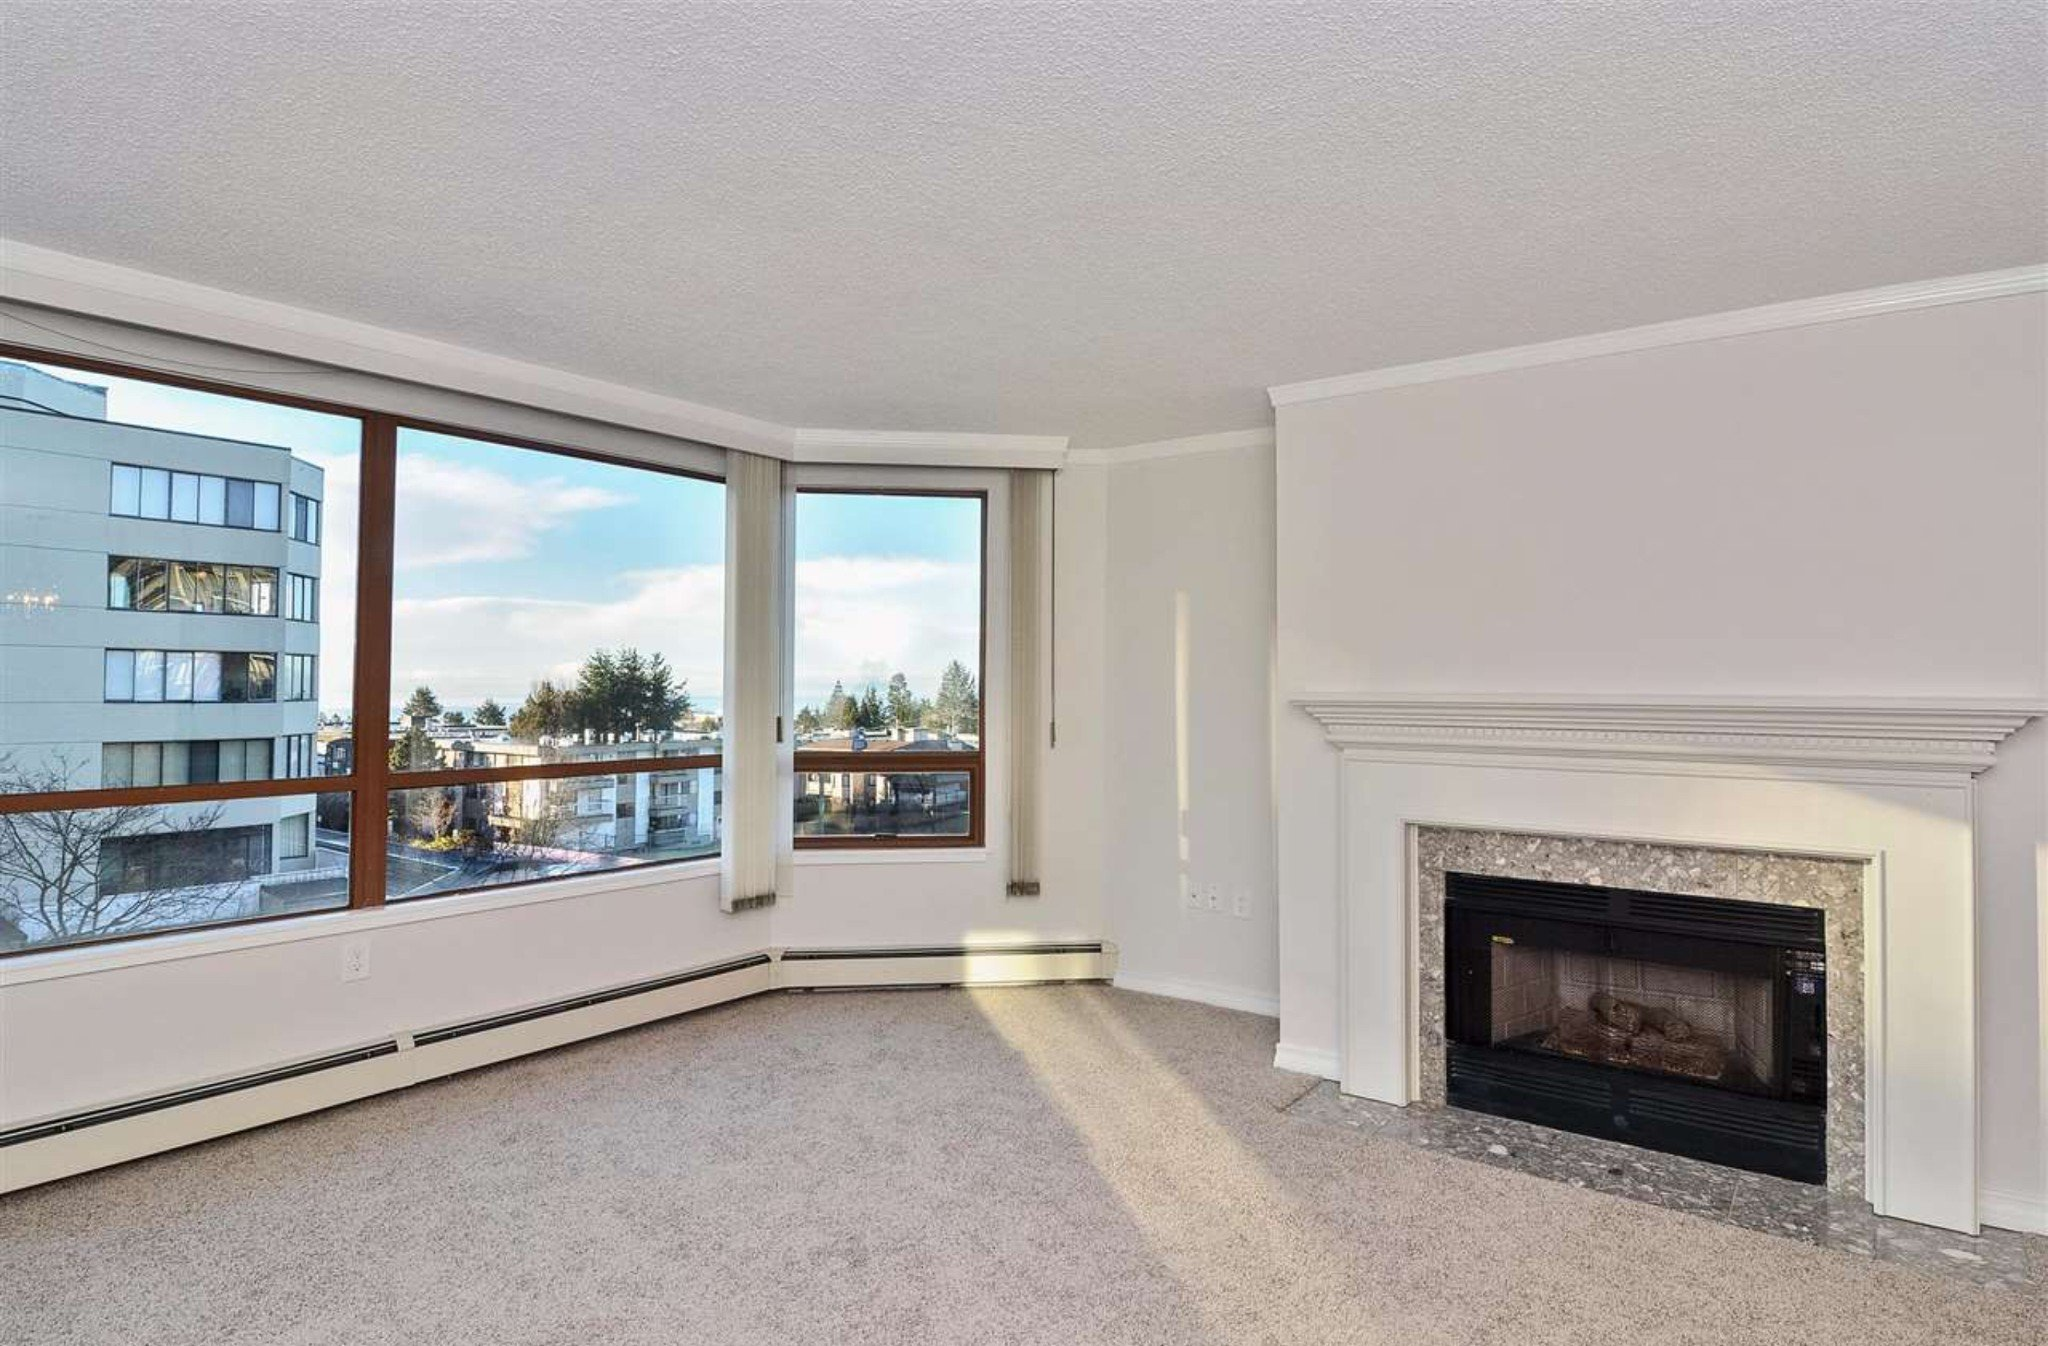 Photo 7: Photos: 405, 15111 Russell Avenue: White Rock Condo for sale (South Surrey White Rock)  : MLS®# R2133728